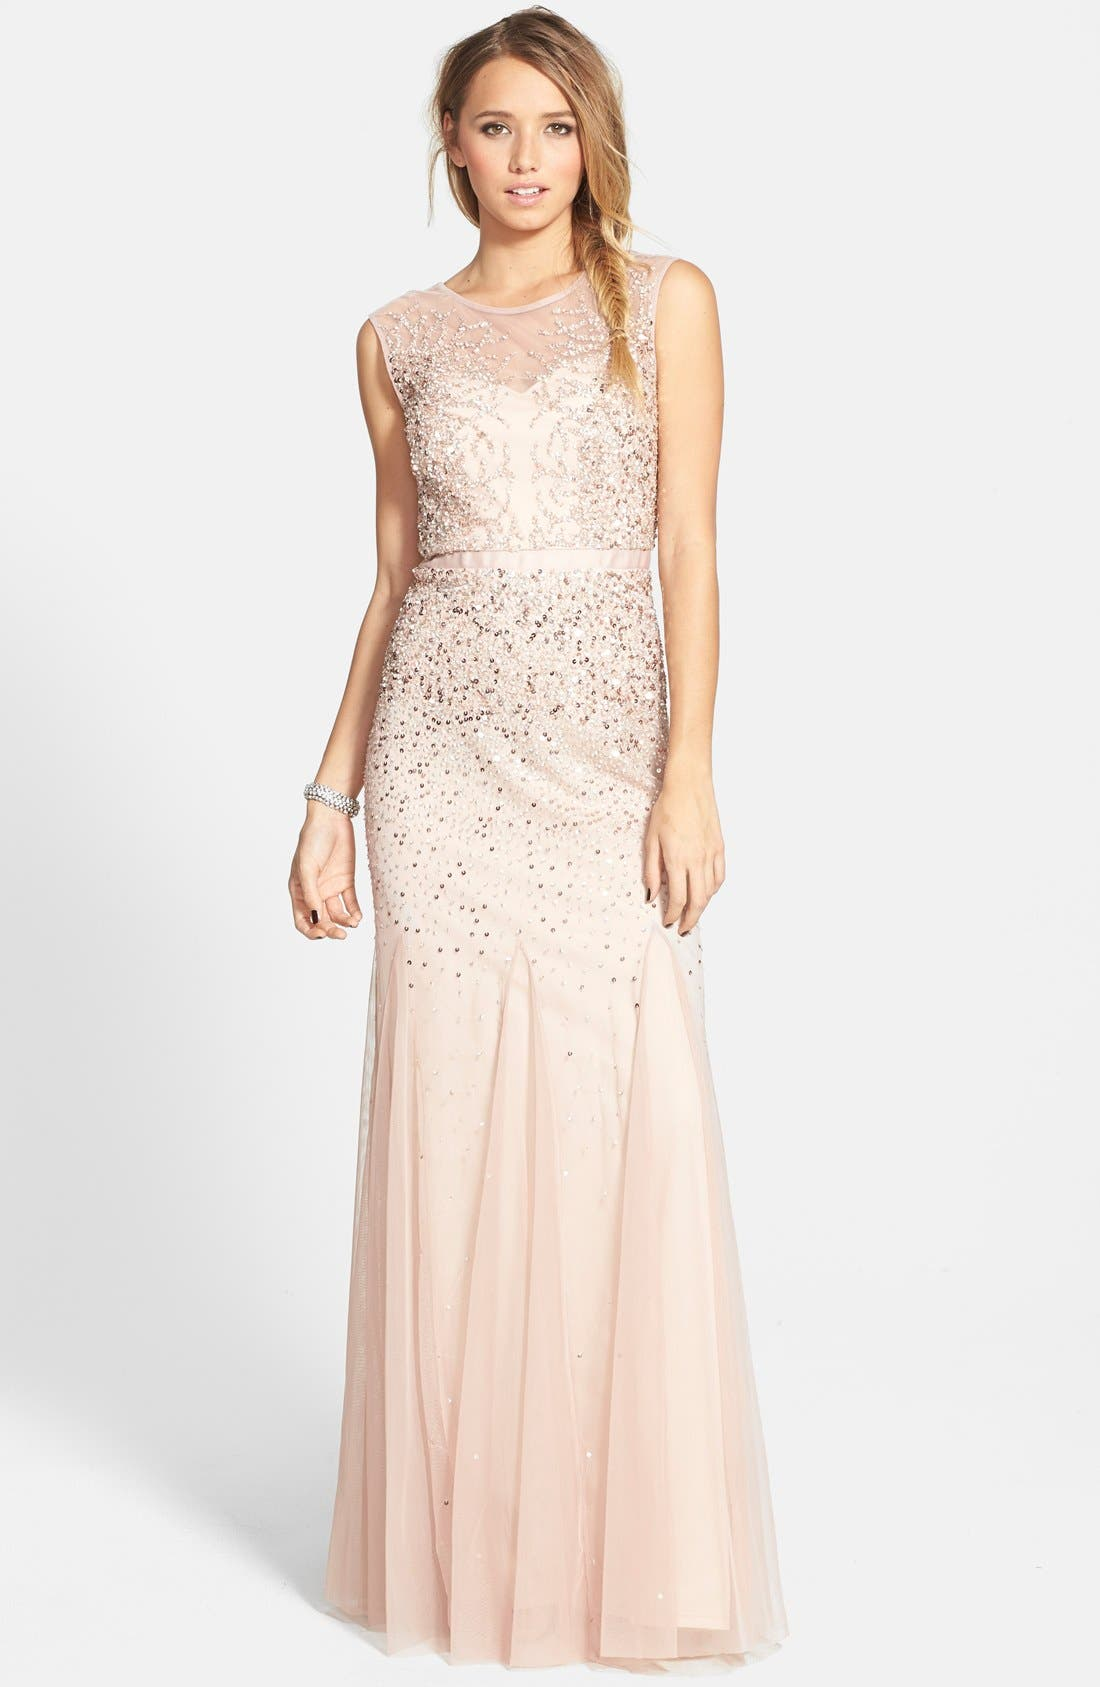 Main Image - Adrianna Papell Beaded Chiffon Gown (Regular & Petite)